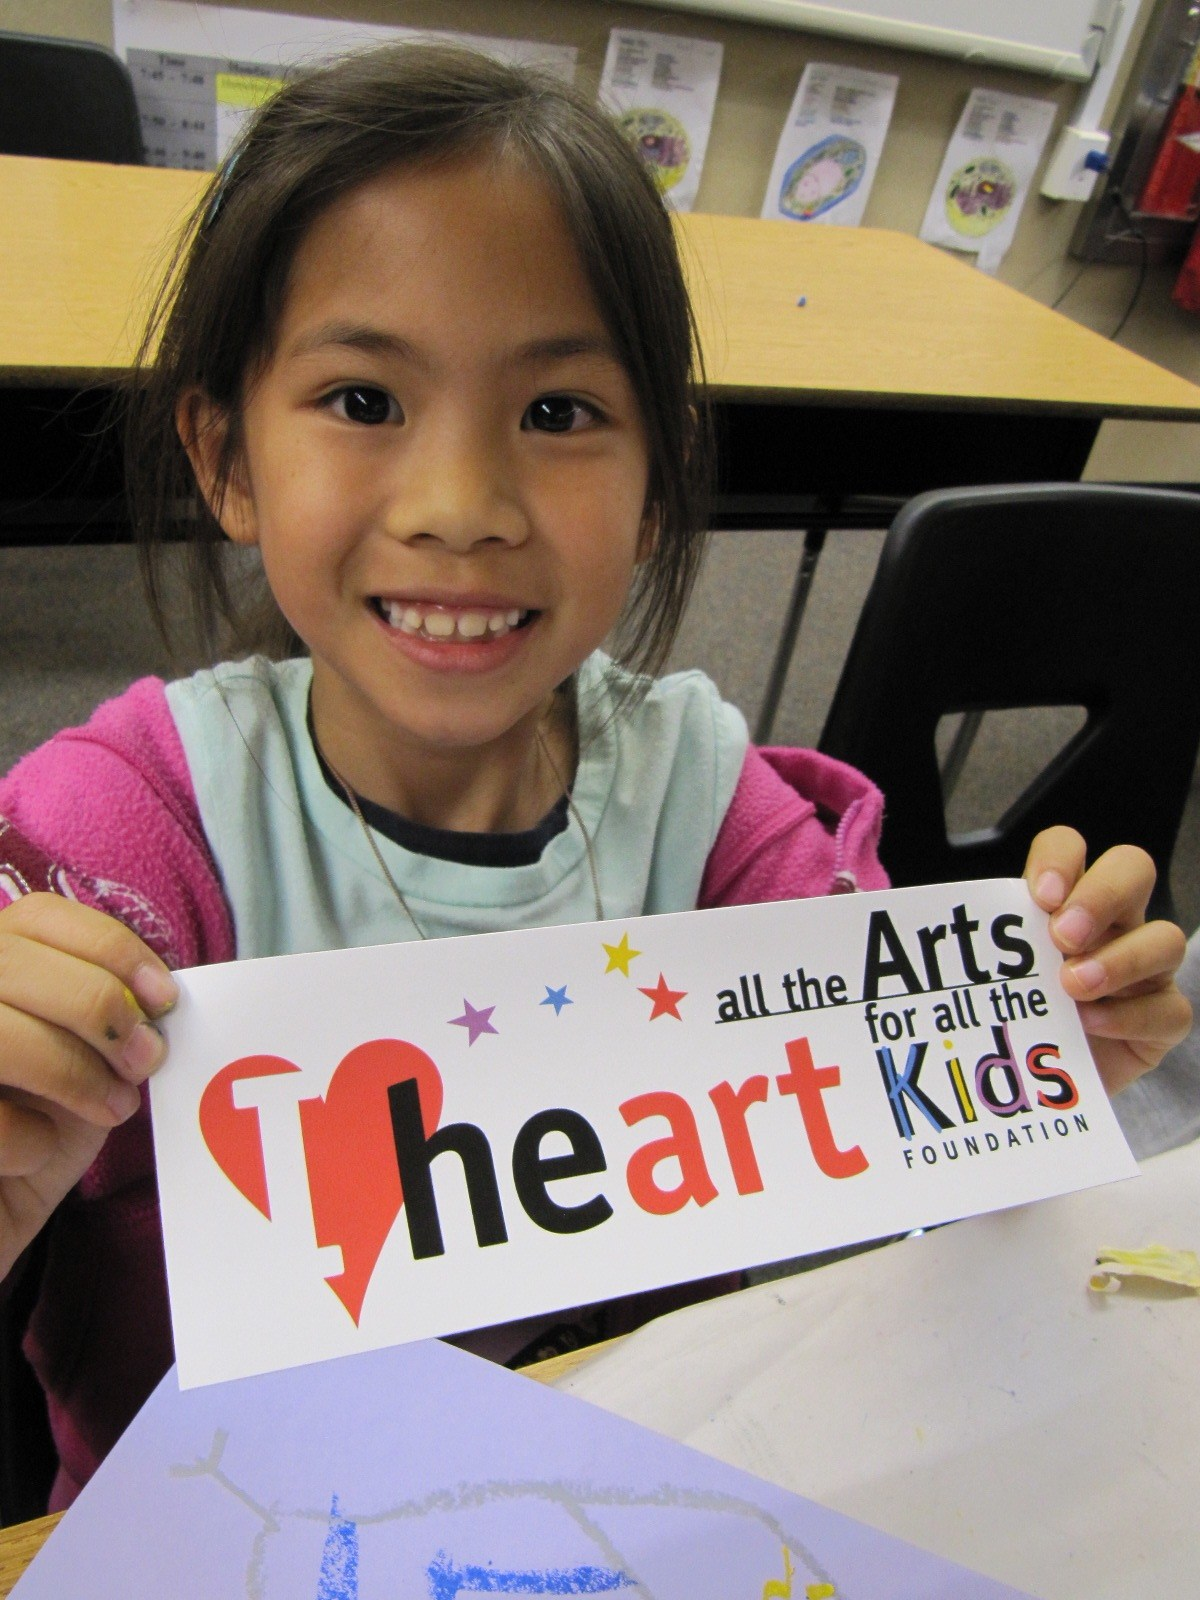 A girl showing All the Arts For All the Kids bumper sticker.